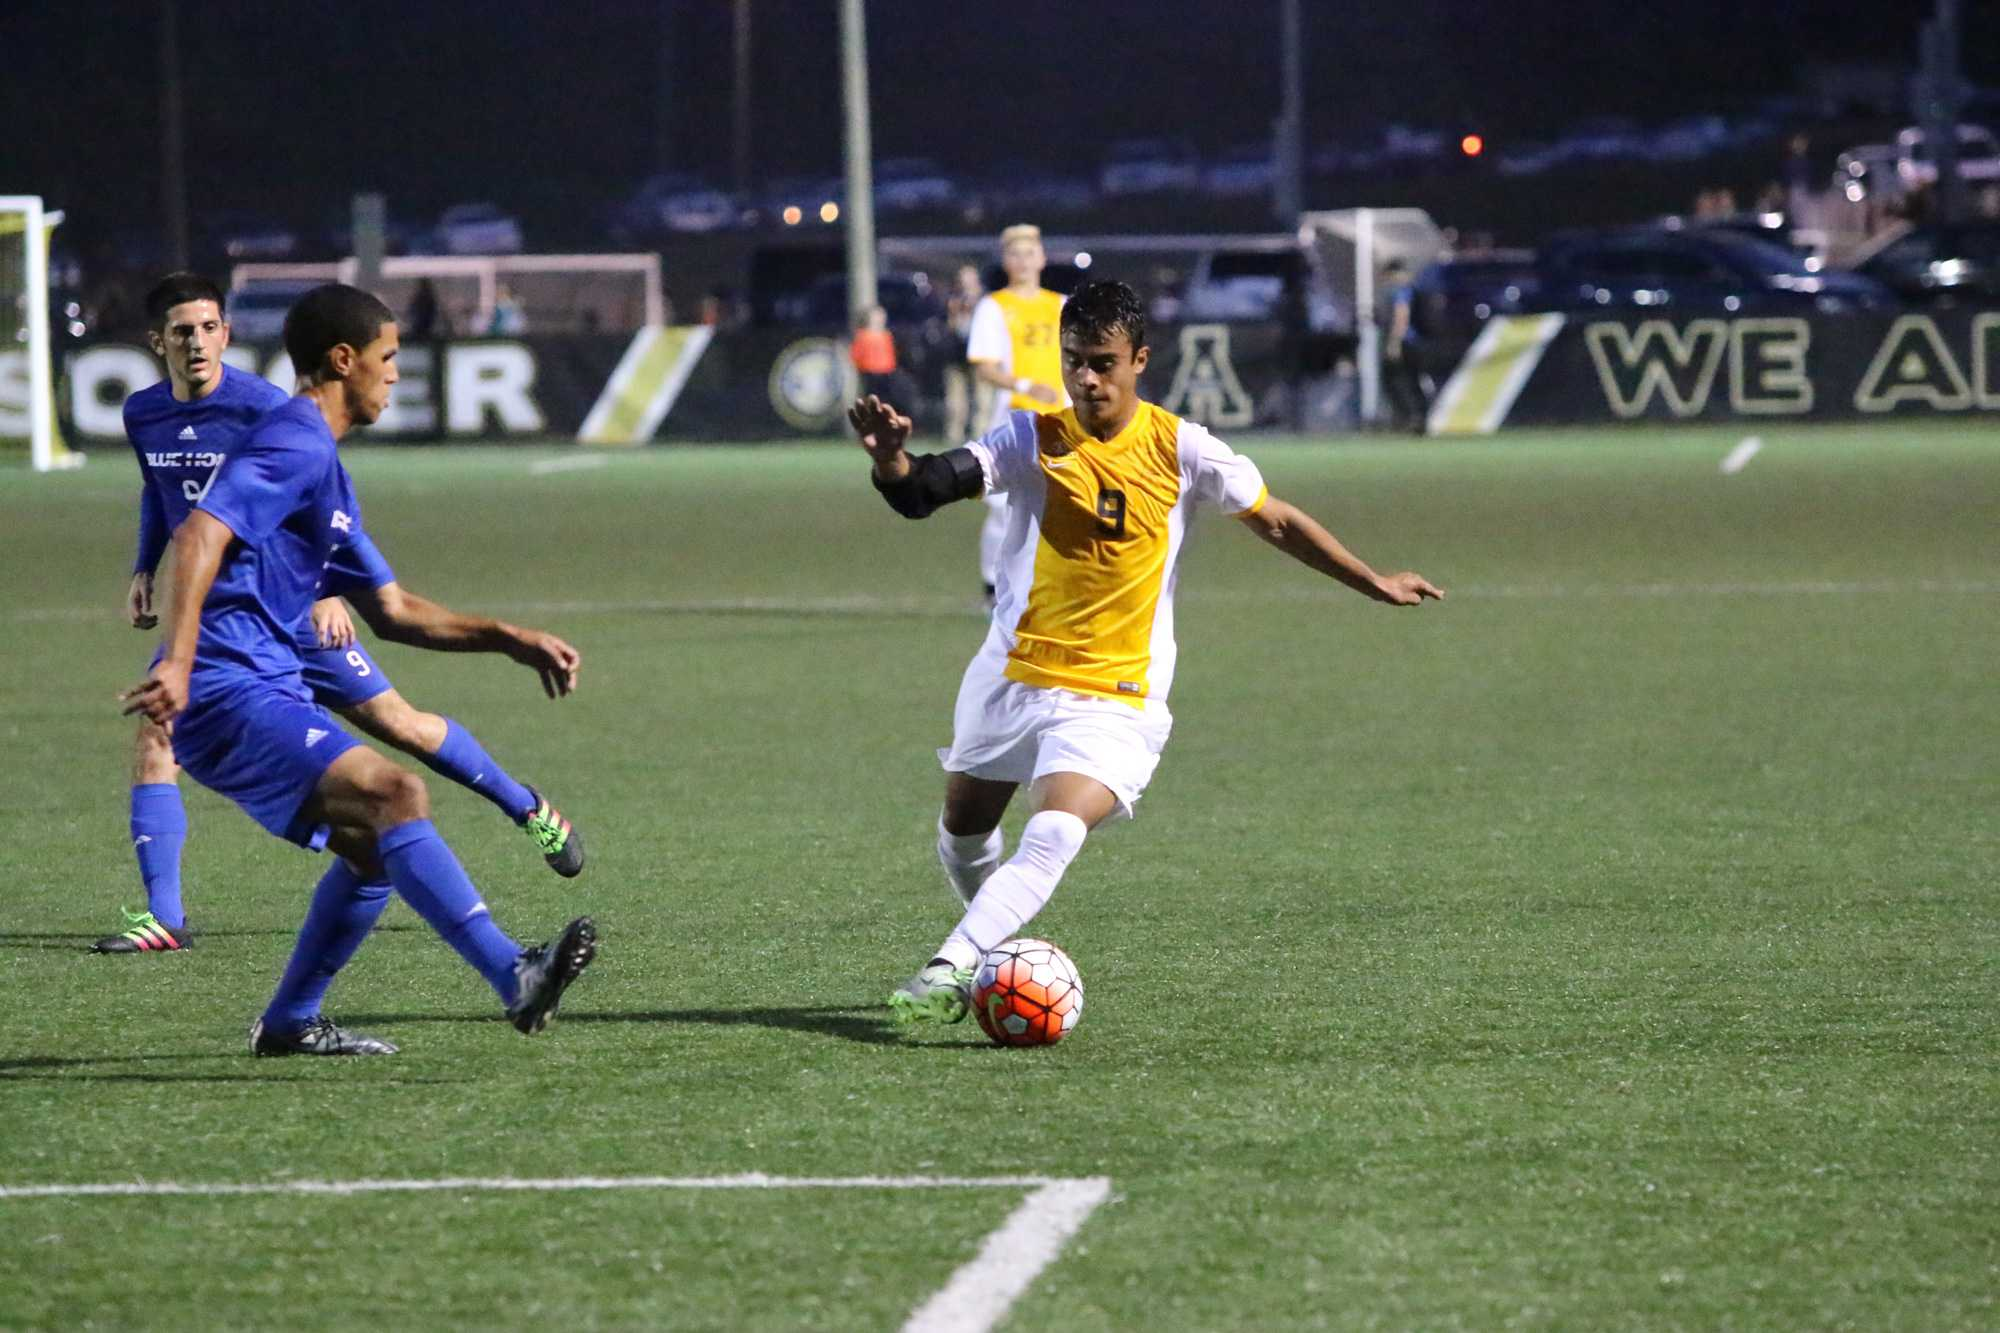 Forward Daniel Avila drives with the ball during App's game against Presbyterian on Tuesday. Courtesy of Appalachian State Athletics/Rob Moore